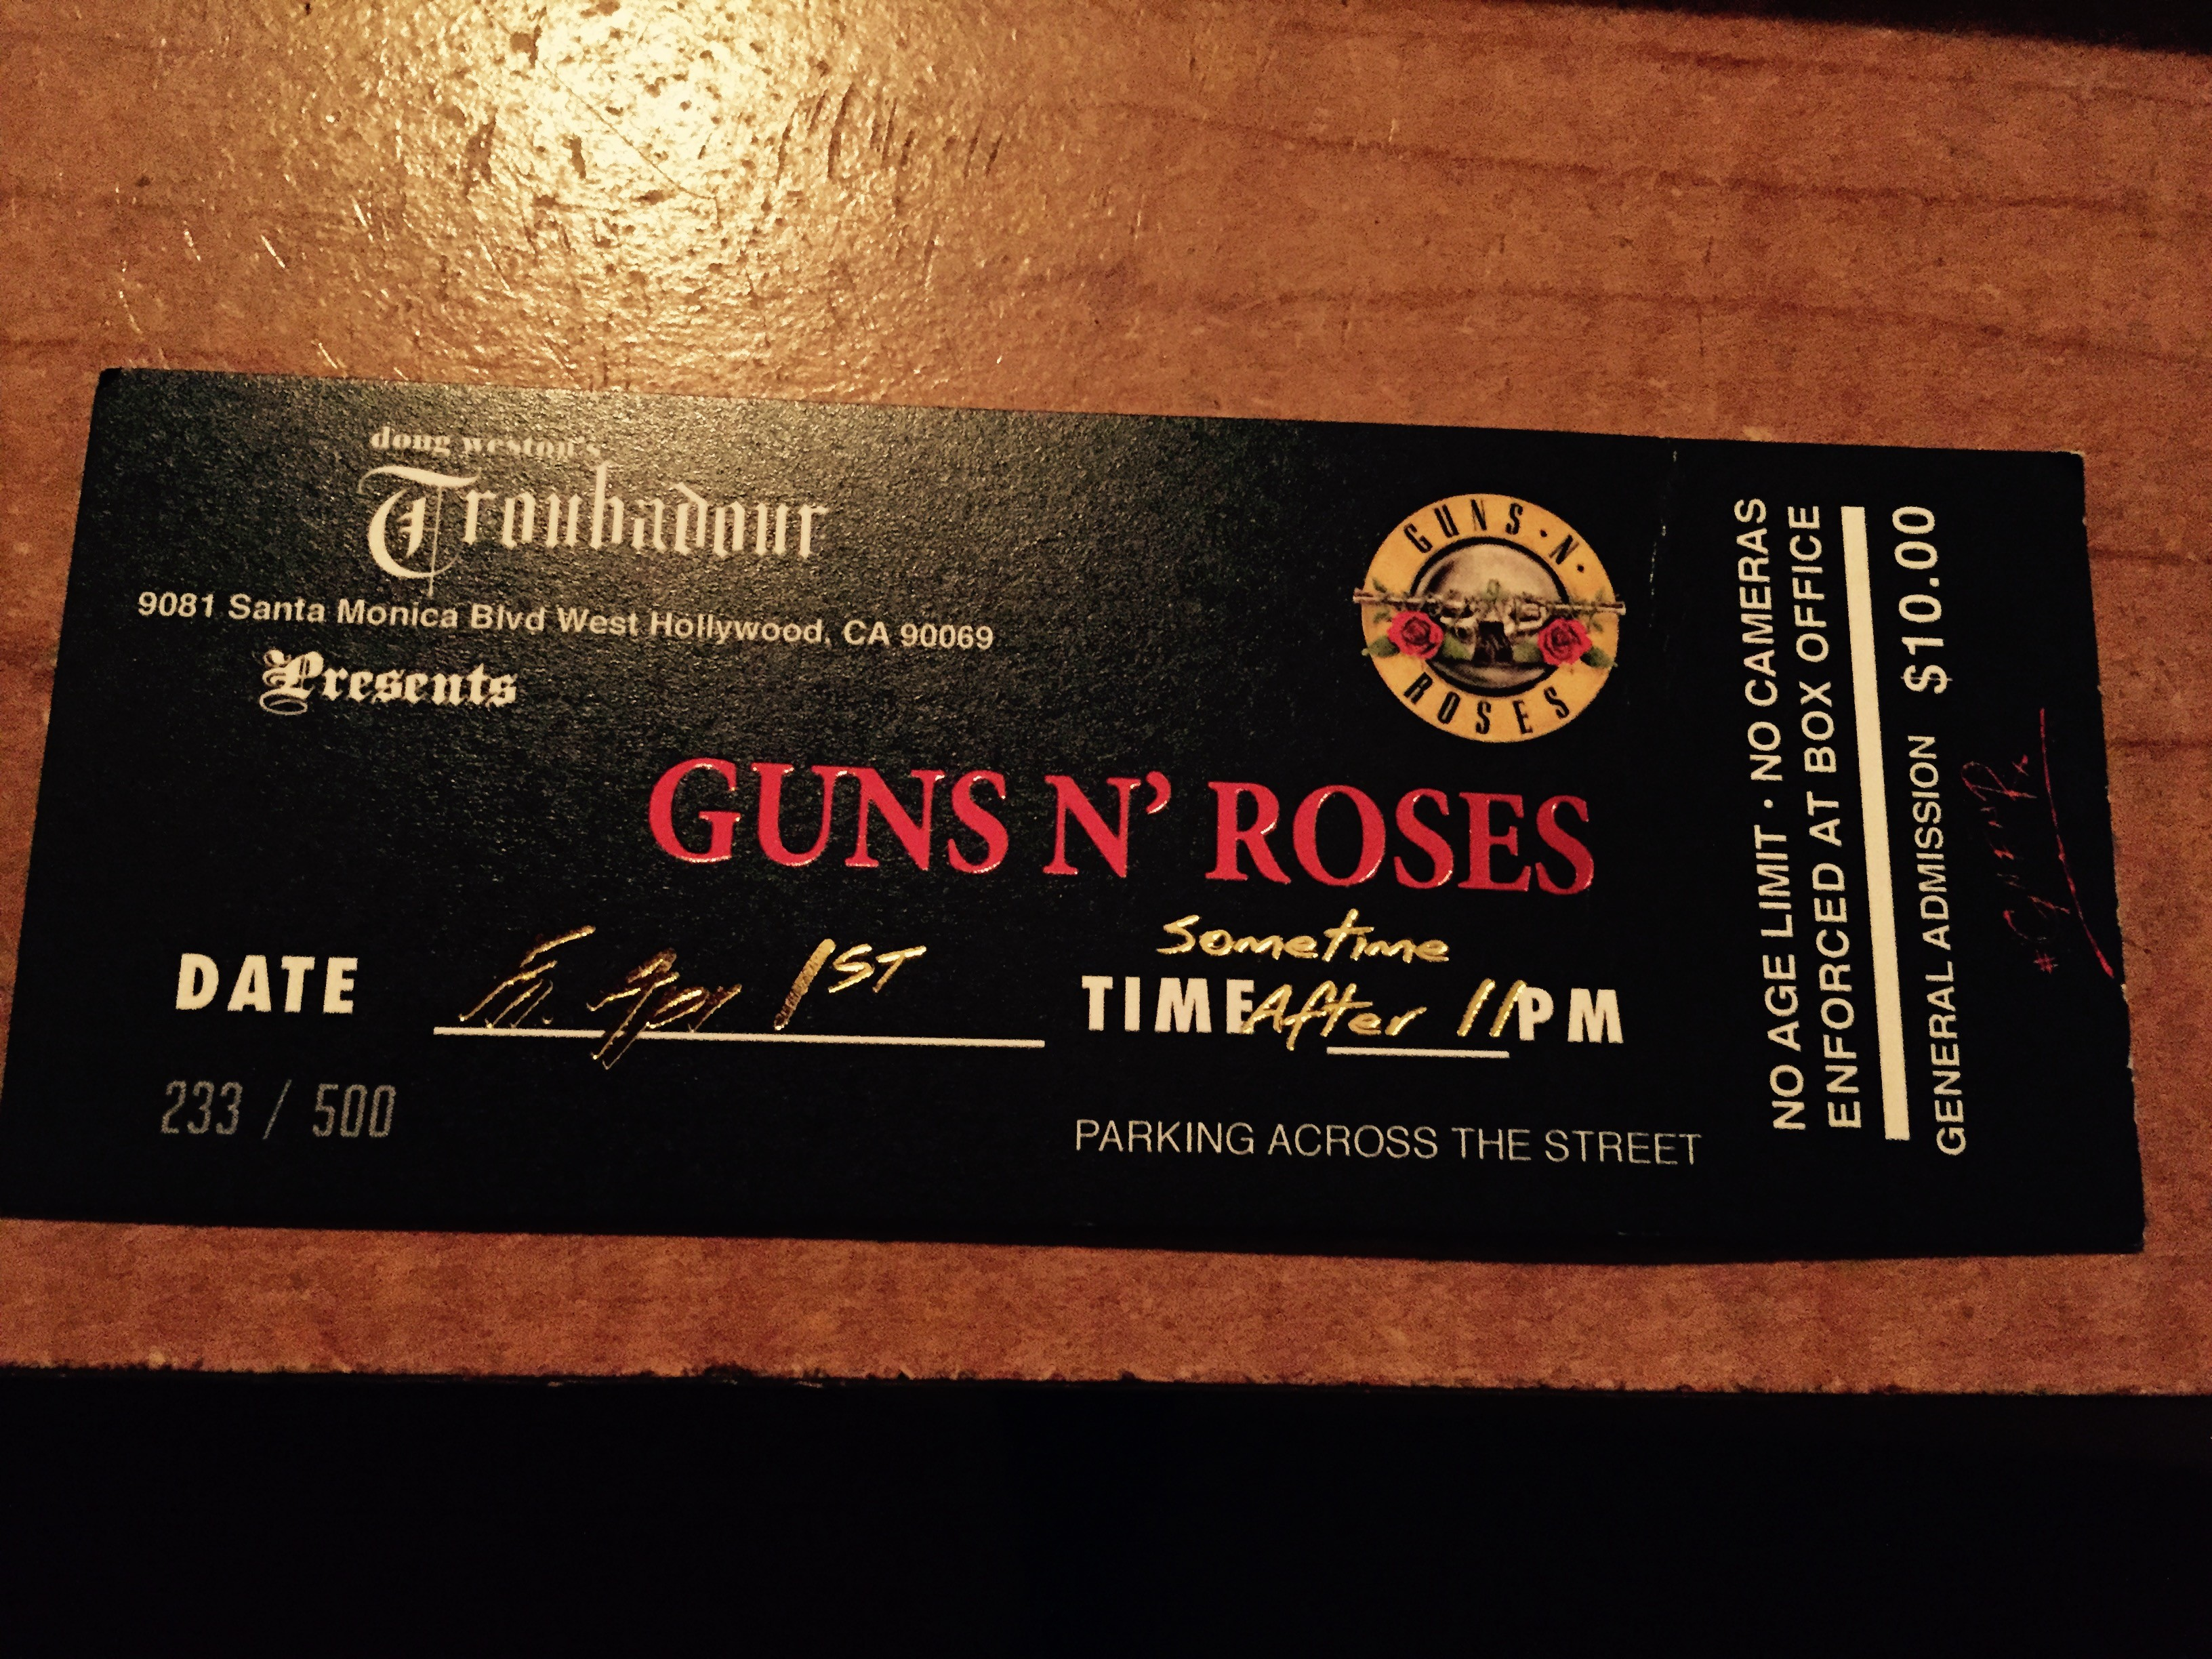 Guns and roses review